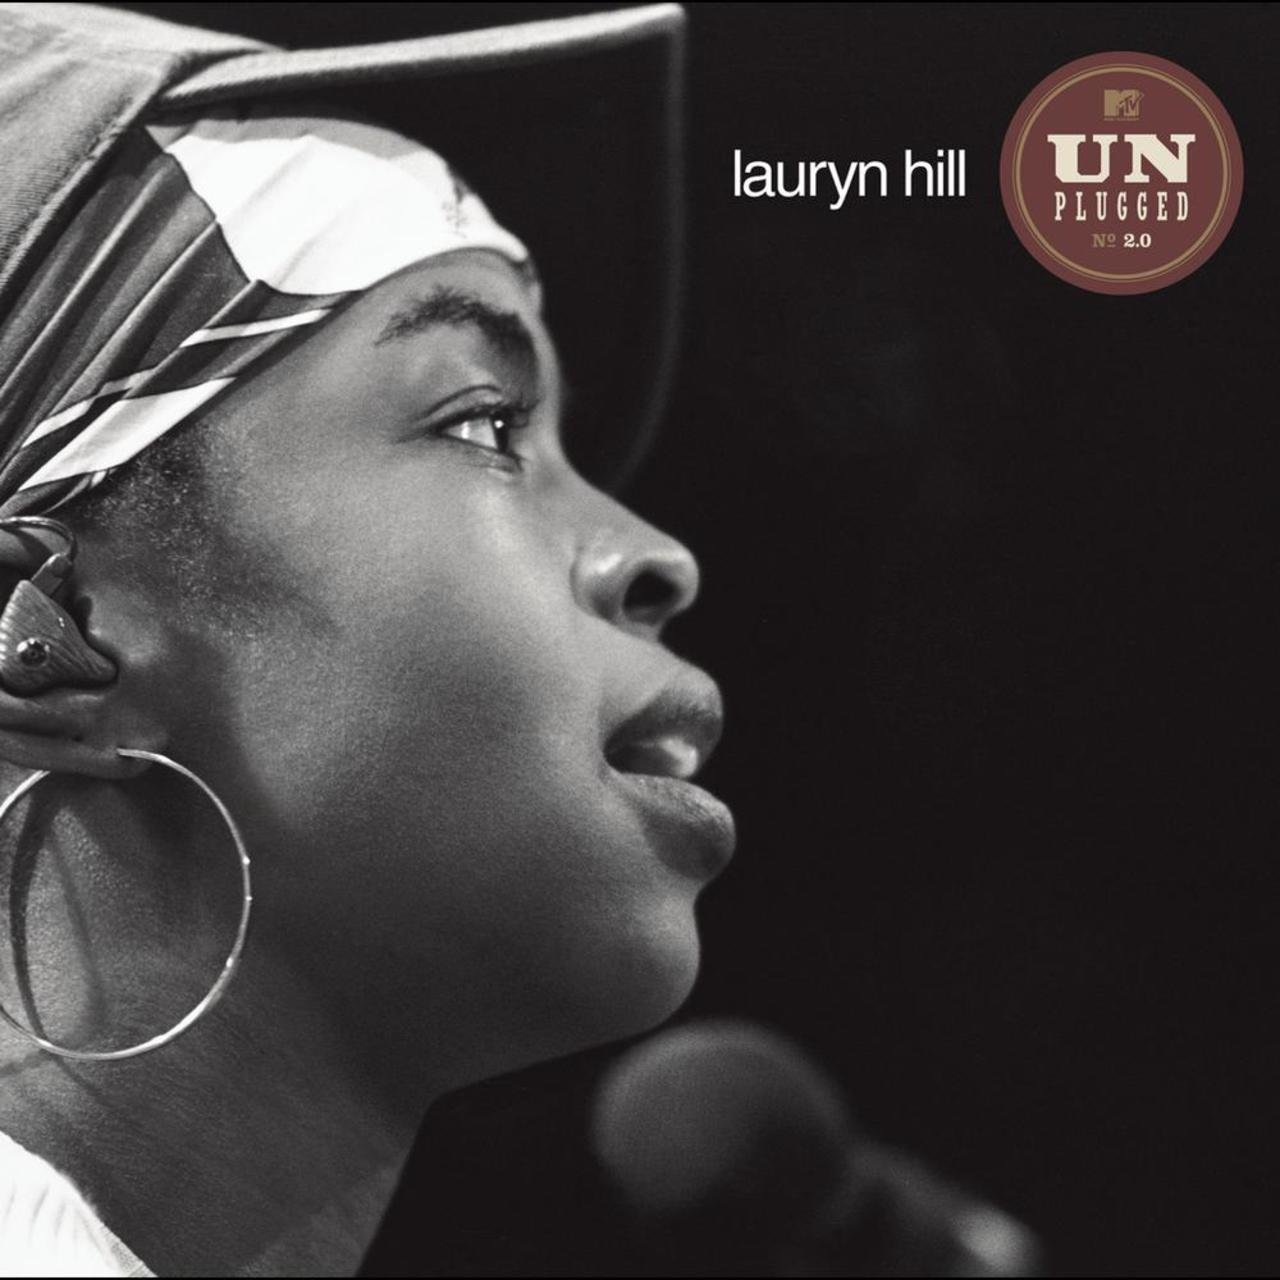 Image result for MTV Unplugged No. 2.0